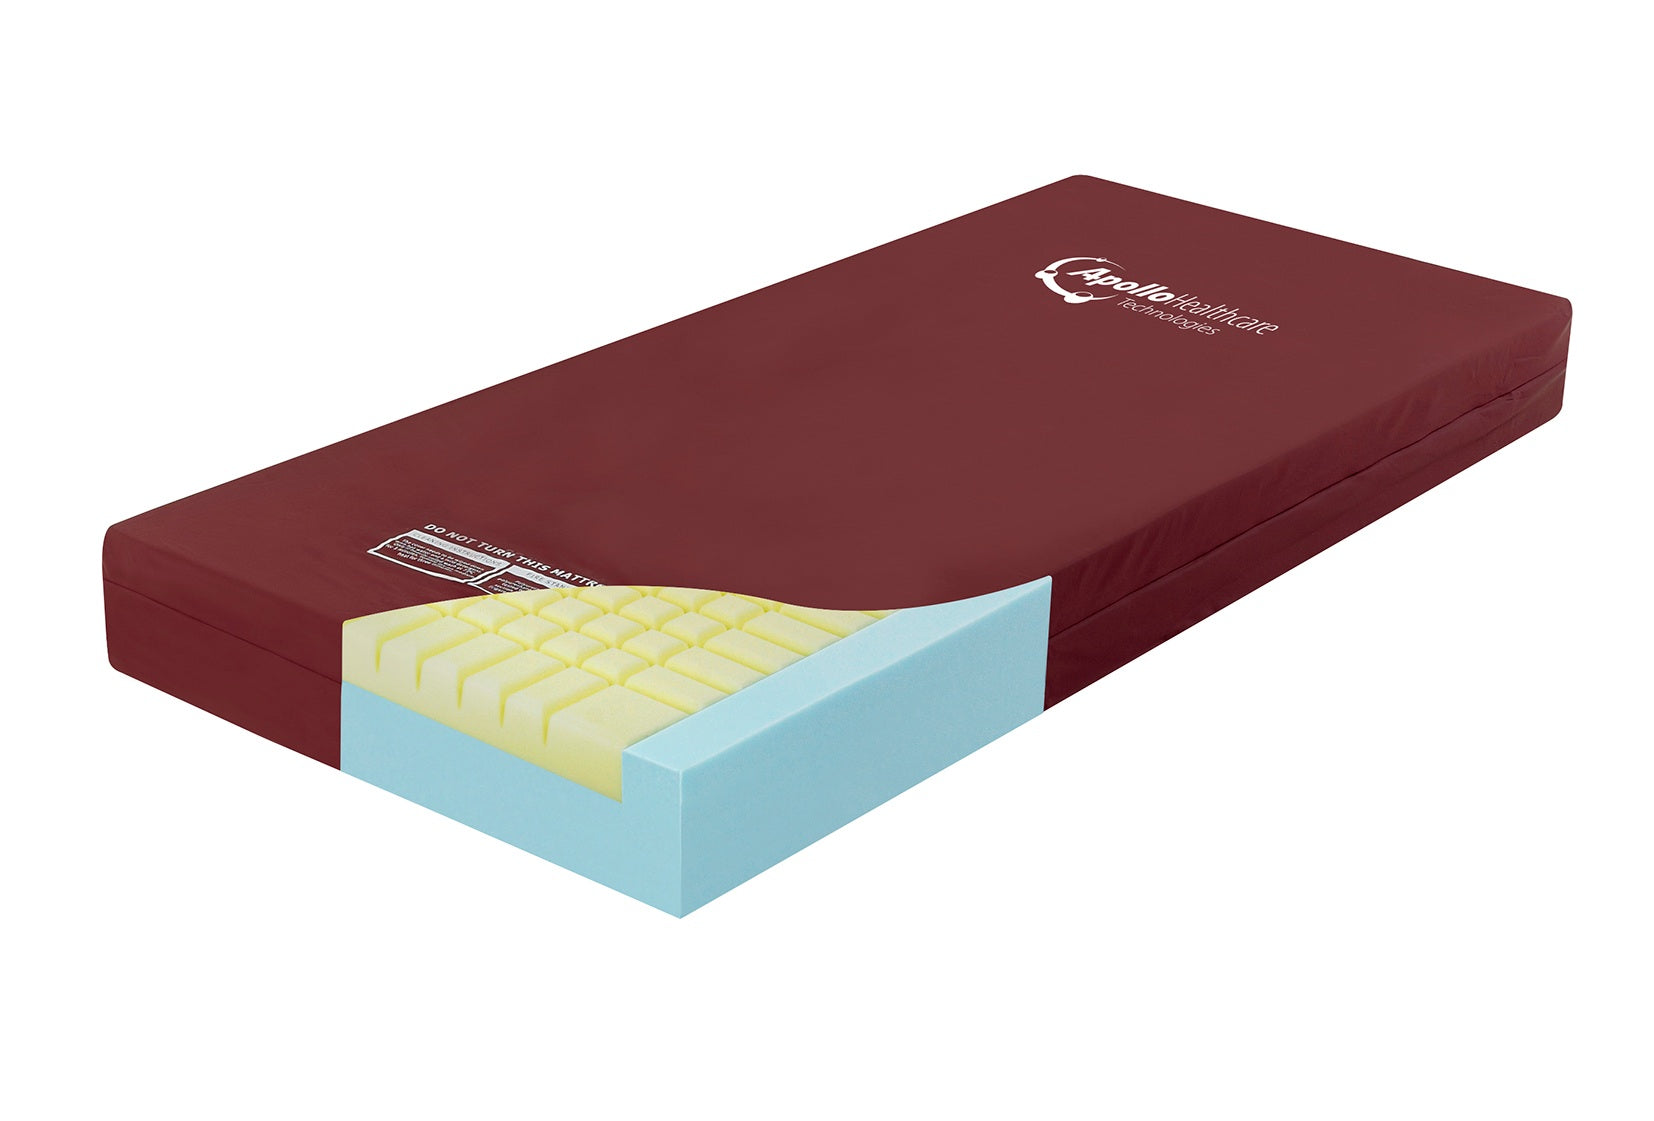 Memo-Form Plus Static Healthcare Mattress - Cheap Beds Direct